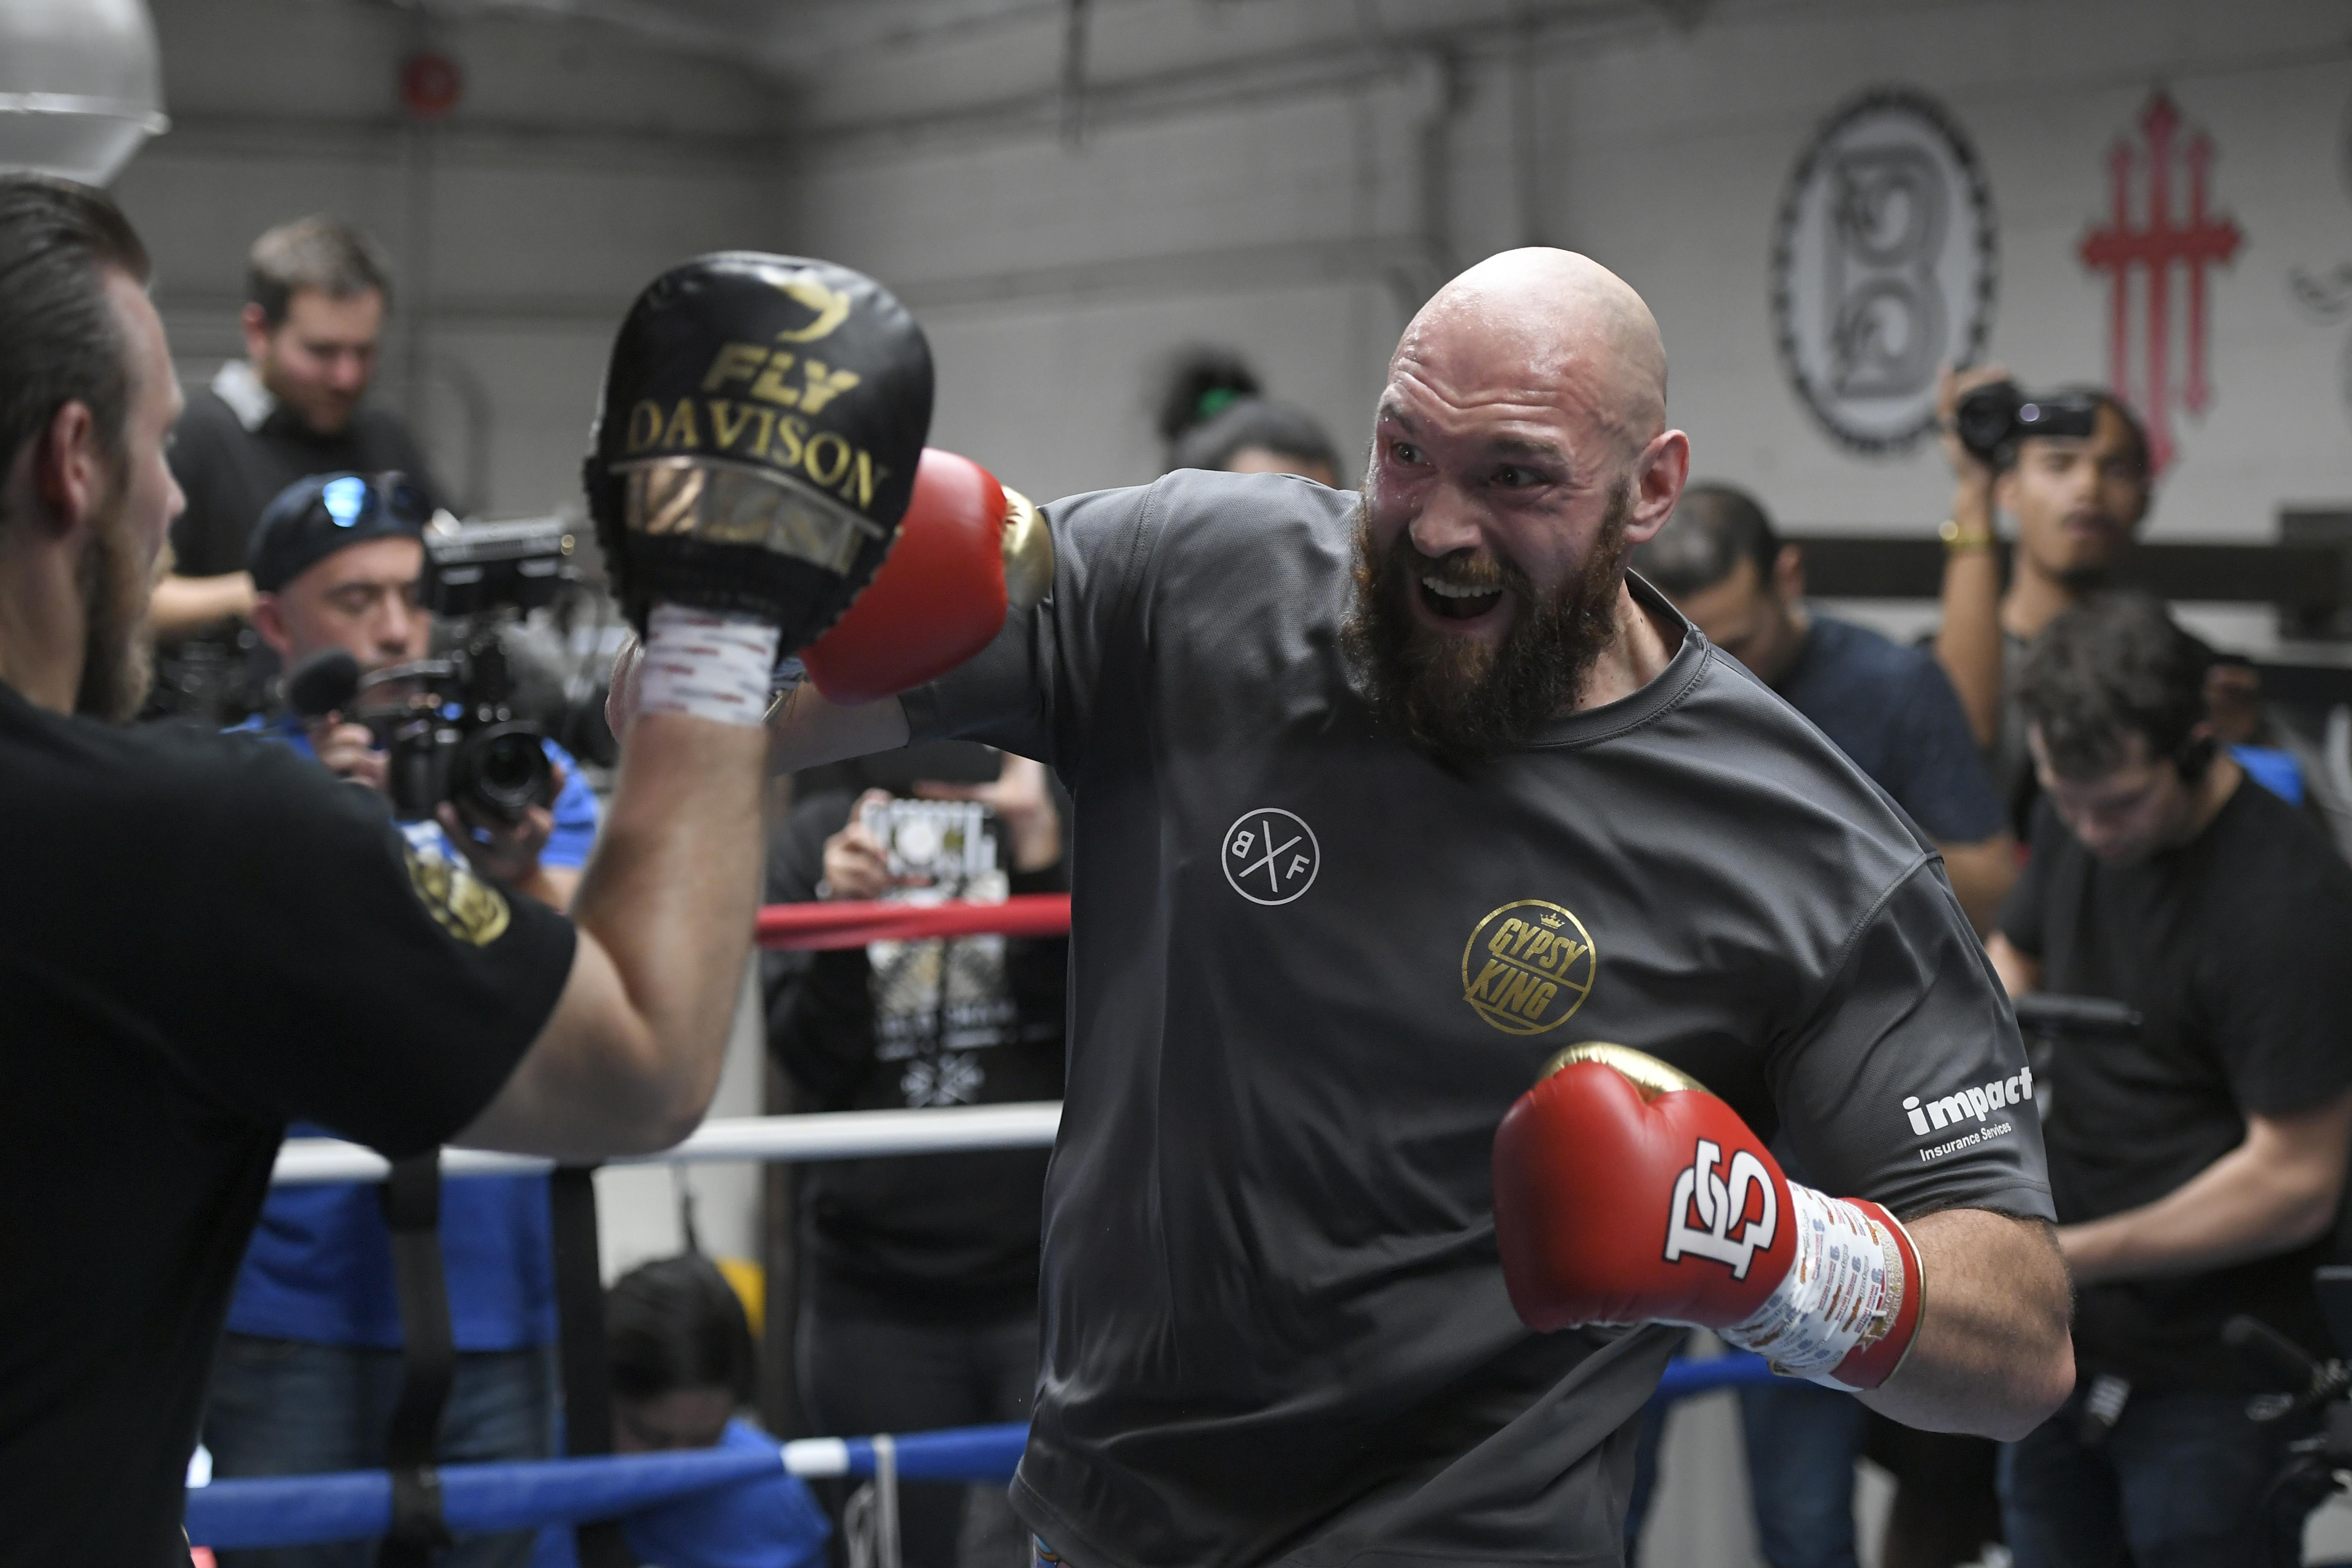 Wilder is gearing up to face Tyson Fury at the Staples Center on December 1